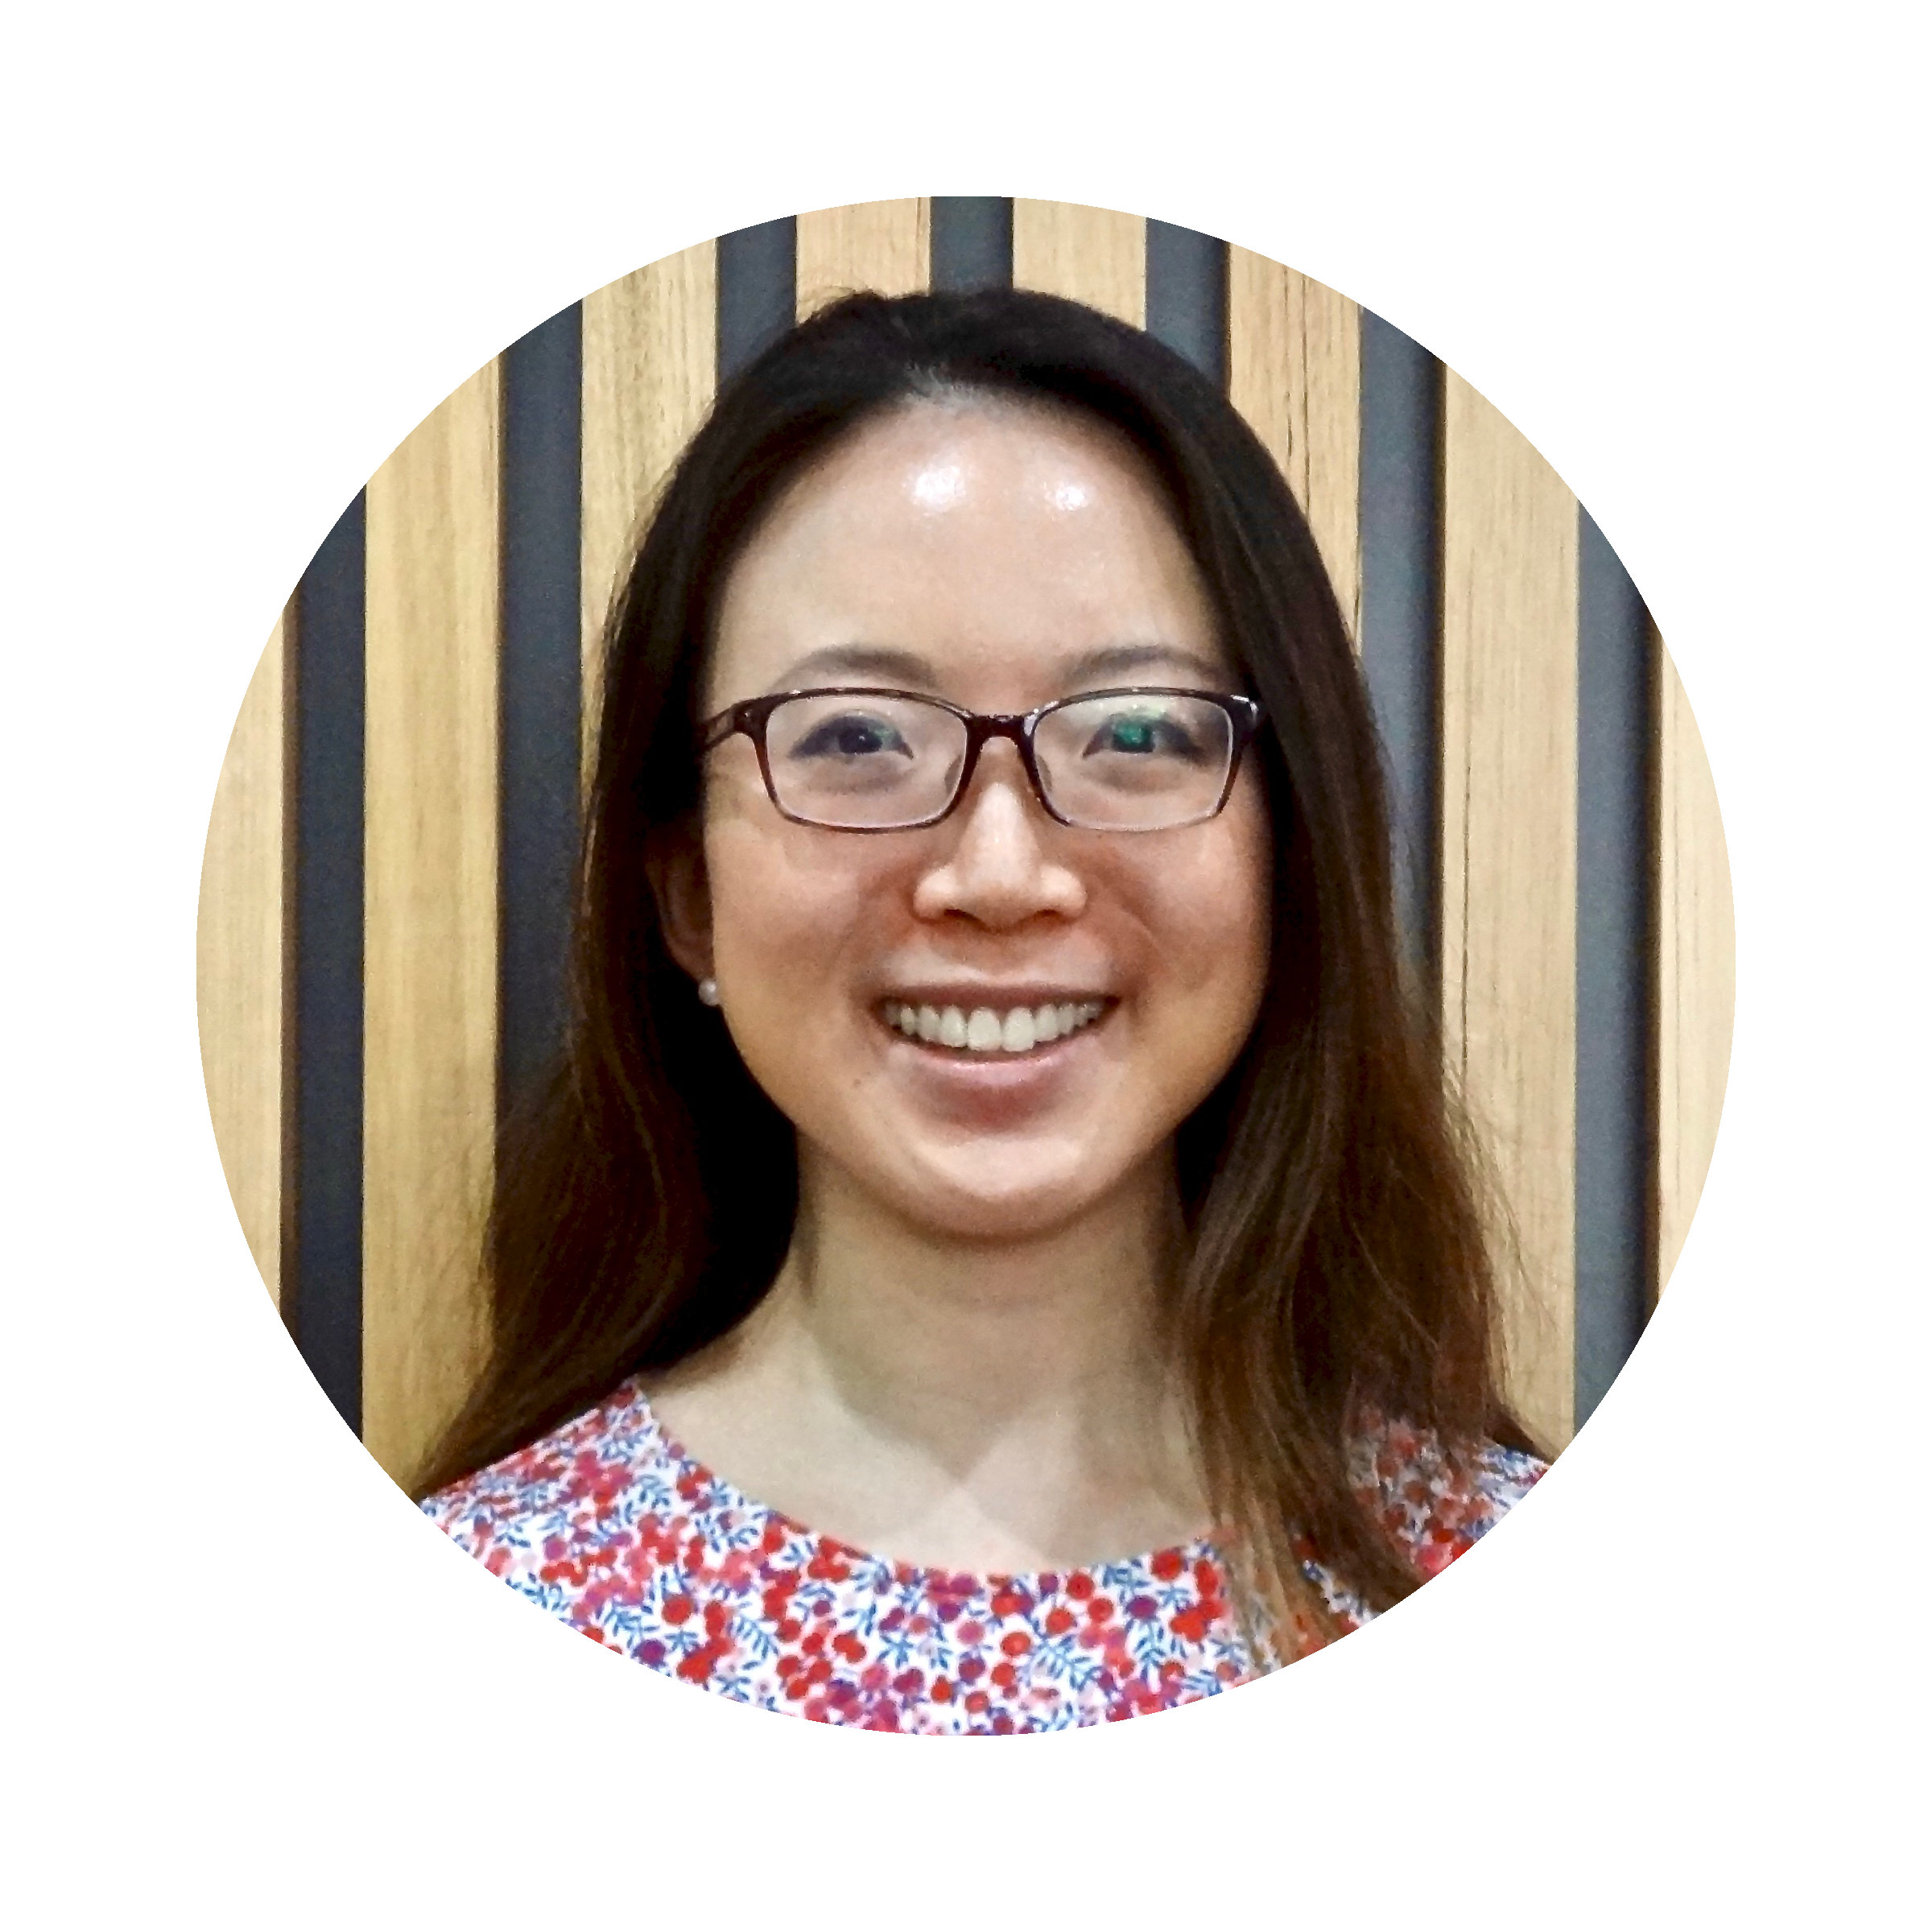 Dr Jun Yeoh - Dr Jun Yeah graduated in 2012 from Monash University and obtained her fellowship for The Royal Australian College of General Practitioners in 2018. Jun enjoys all aspects of general practice and preventative health care. In particular, she is interested in woman's health, performing skin checks and minor skin procedures. Jun constantly strives to provide warm, empathetic and holistic care of patients.Mon: 9am-6pm | Tue: 2pm-6pm | Wed-Fri: 9am-12:30pm | Sat: 9am-12pm